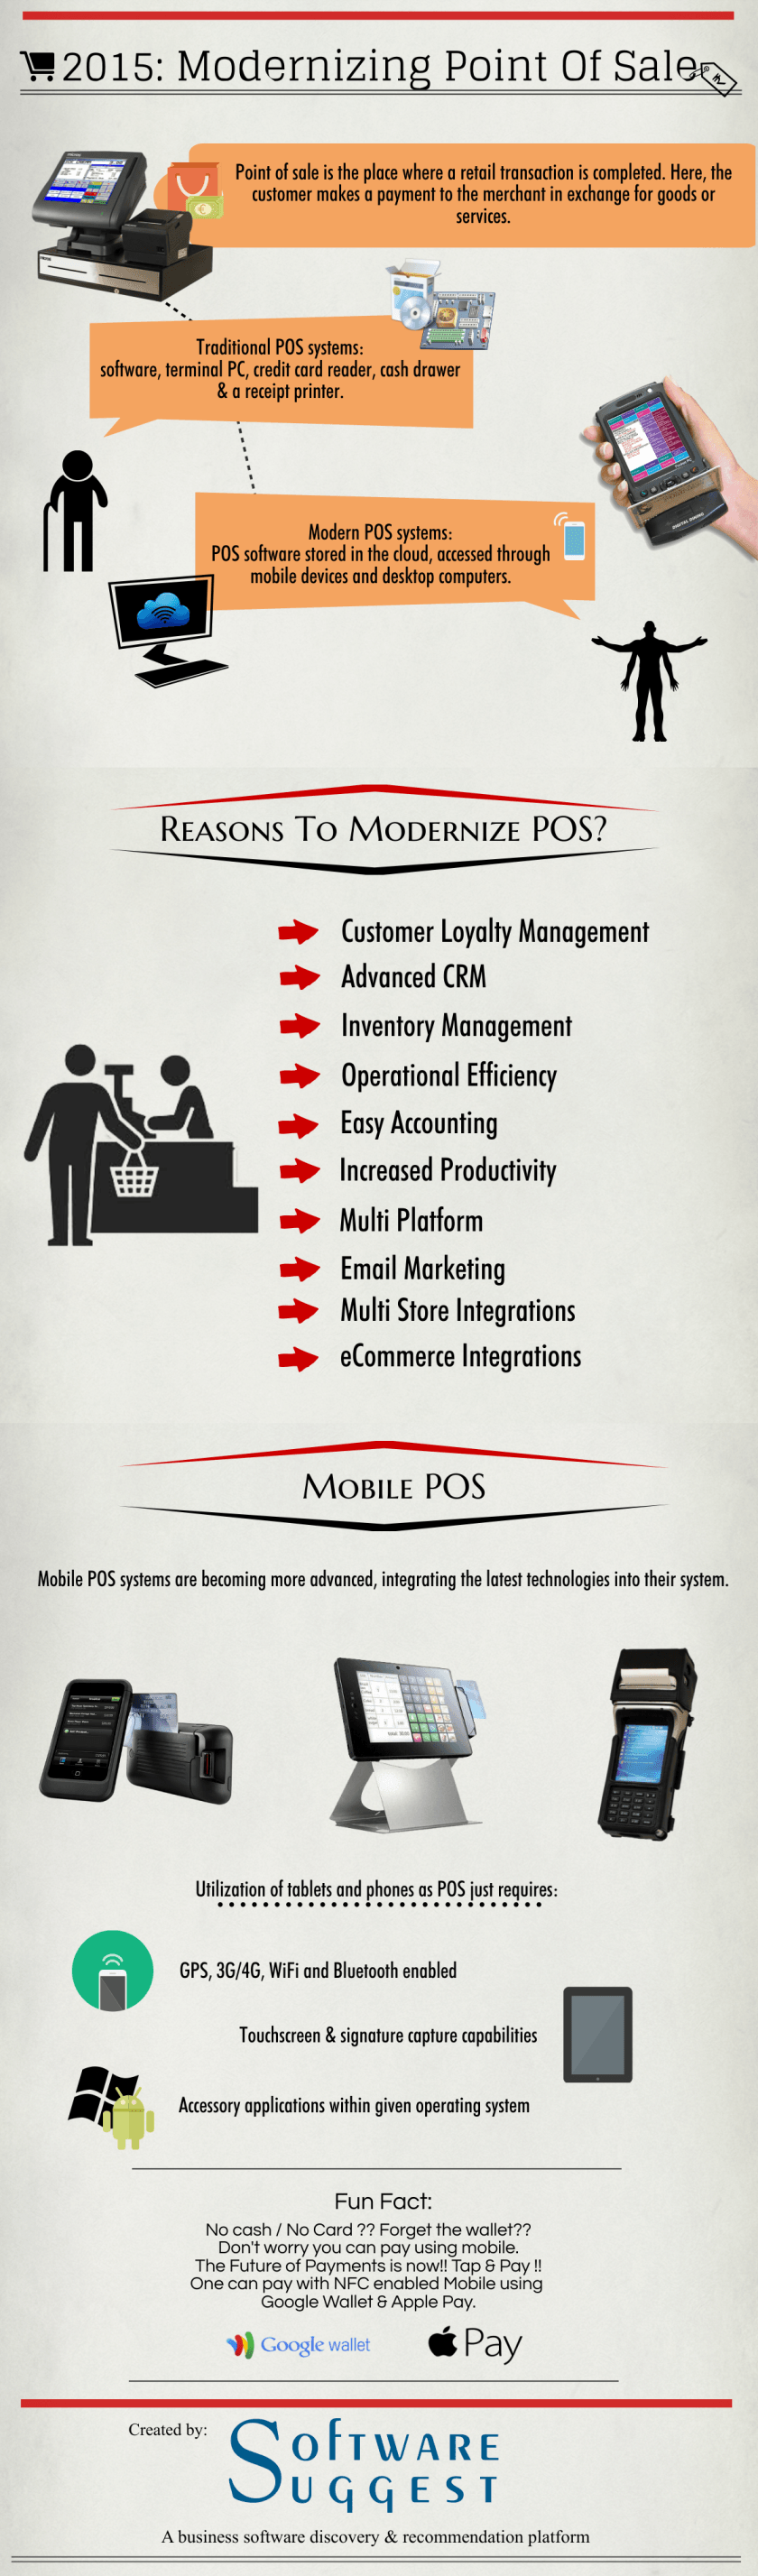 Modernizing your POS System in 2015 - An Infographic